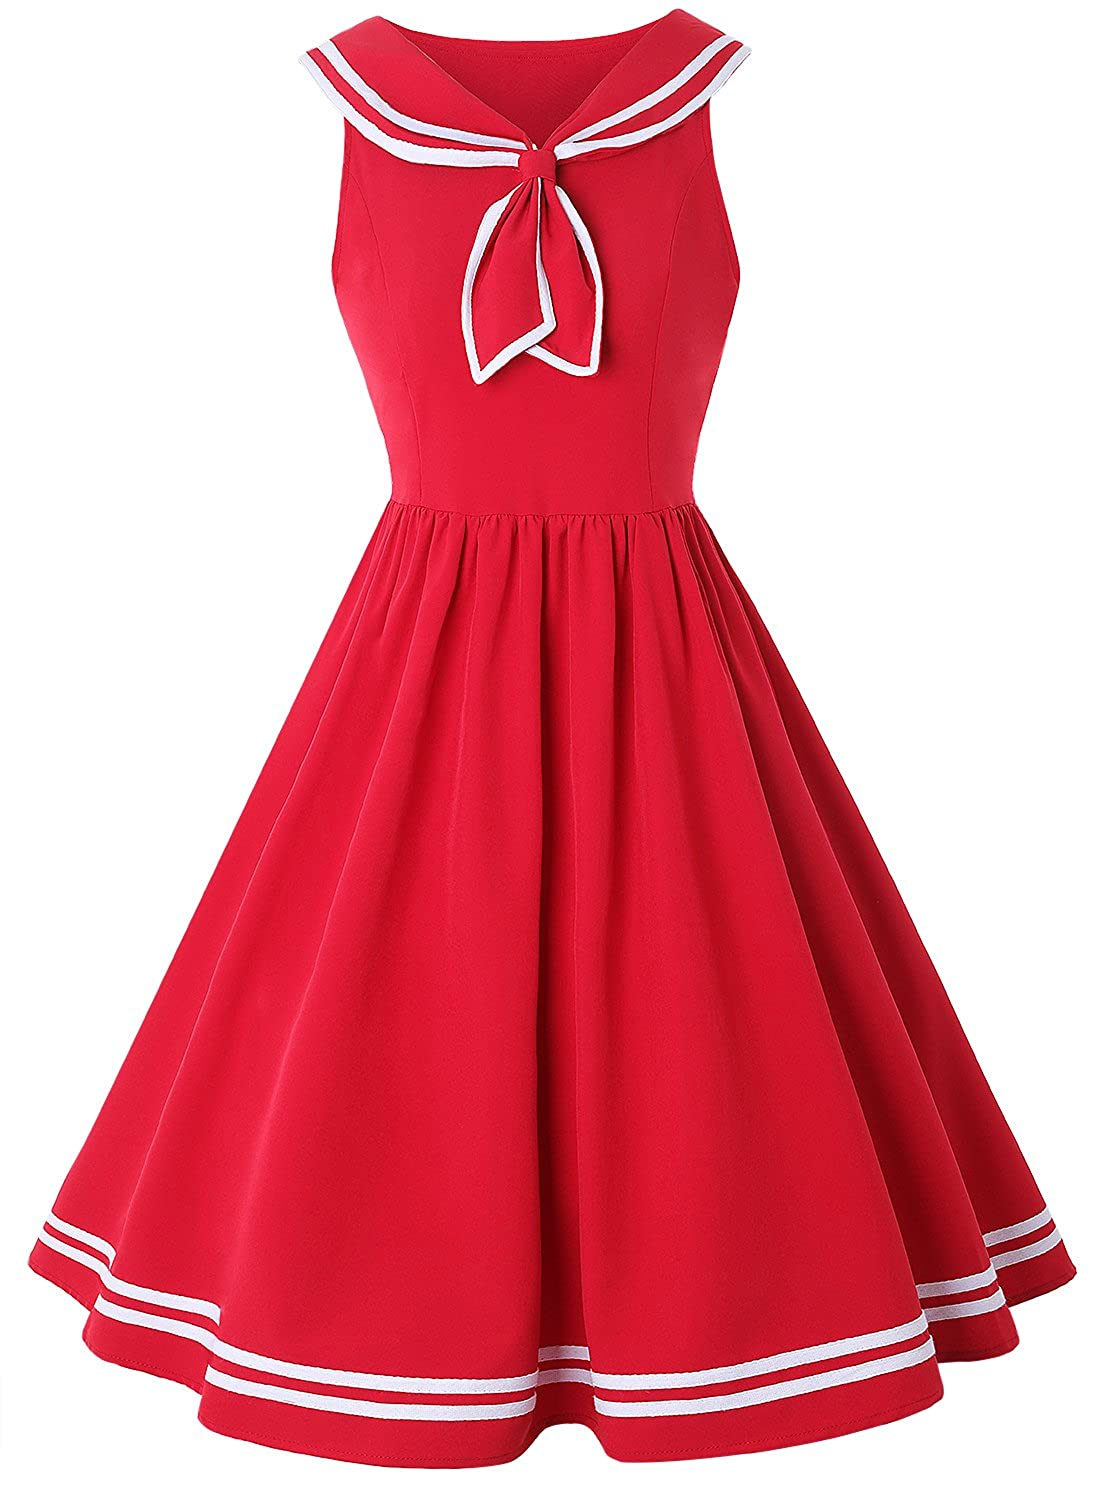 50s Costumes | 50s Halloween Costumes ZAFUL Women Vintage Dress 1950s Nautical Style Summer Sailor Collar Sleeveless Cute Cocktail Party Swing Dresses $26.99 AT vintagedancer.com